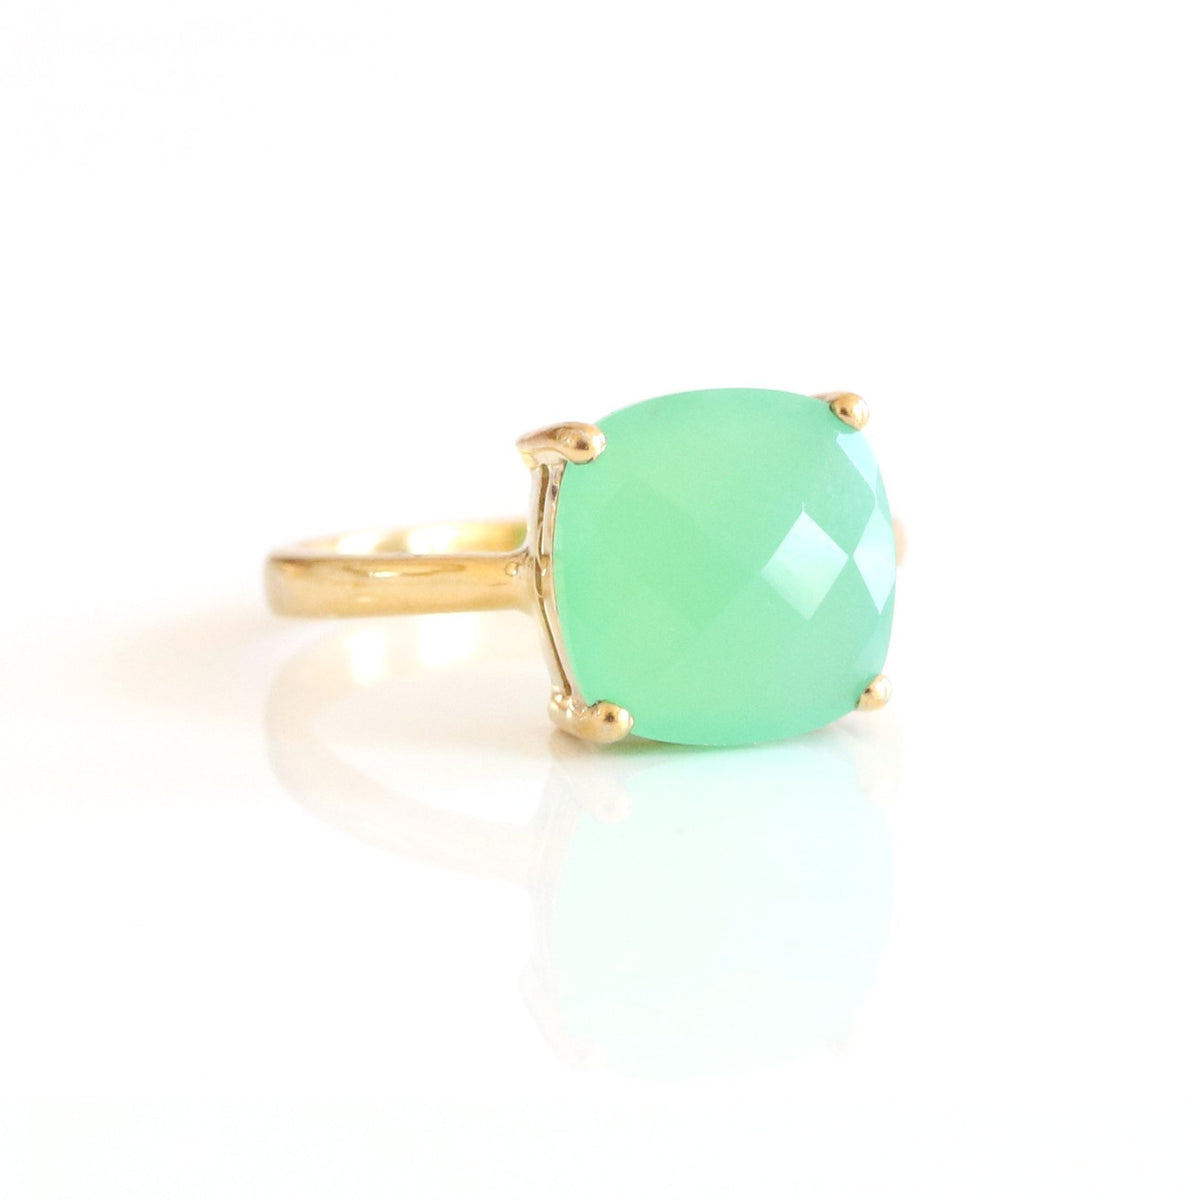 GLEE RING - CHRYSOPRASE & GOLD - SO PRETTY CARA COTTER